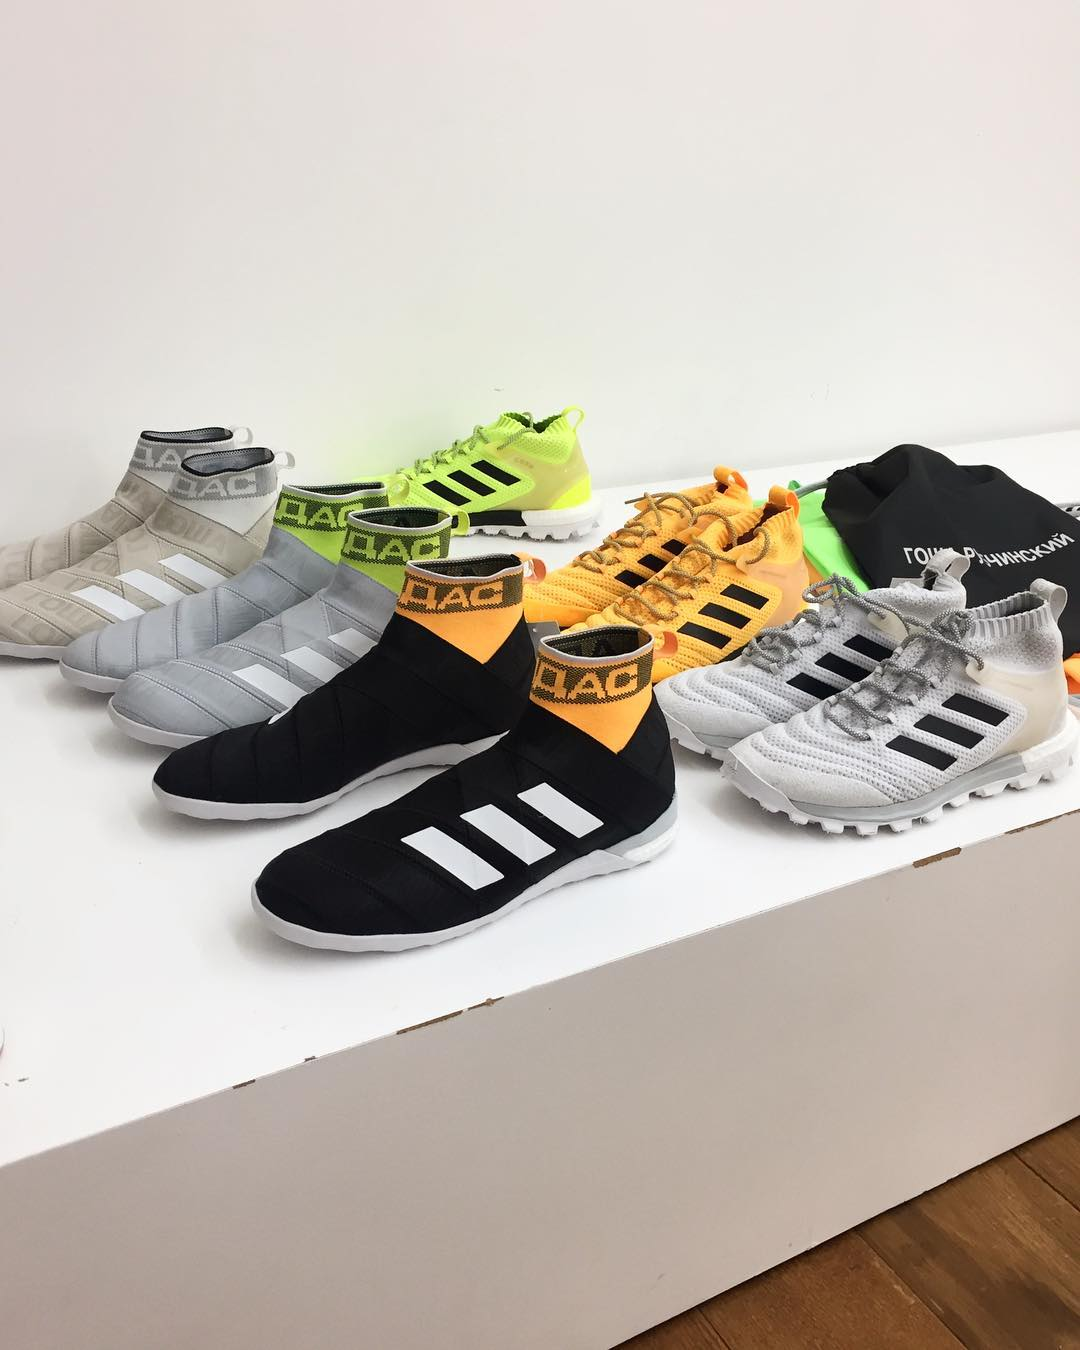 gosha-rubchinskiy-2018-spring-summer-collection-sneaker